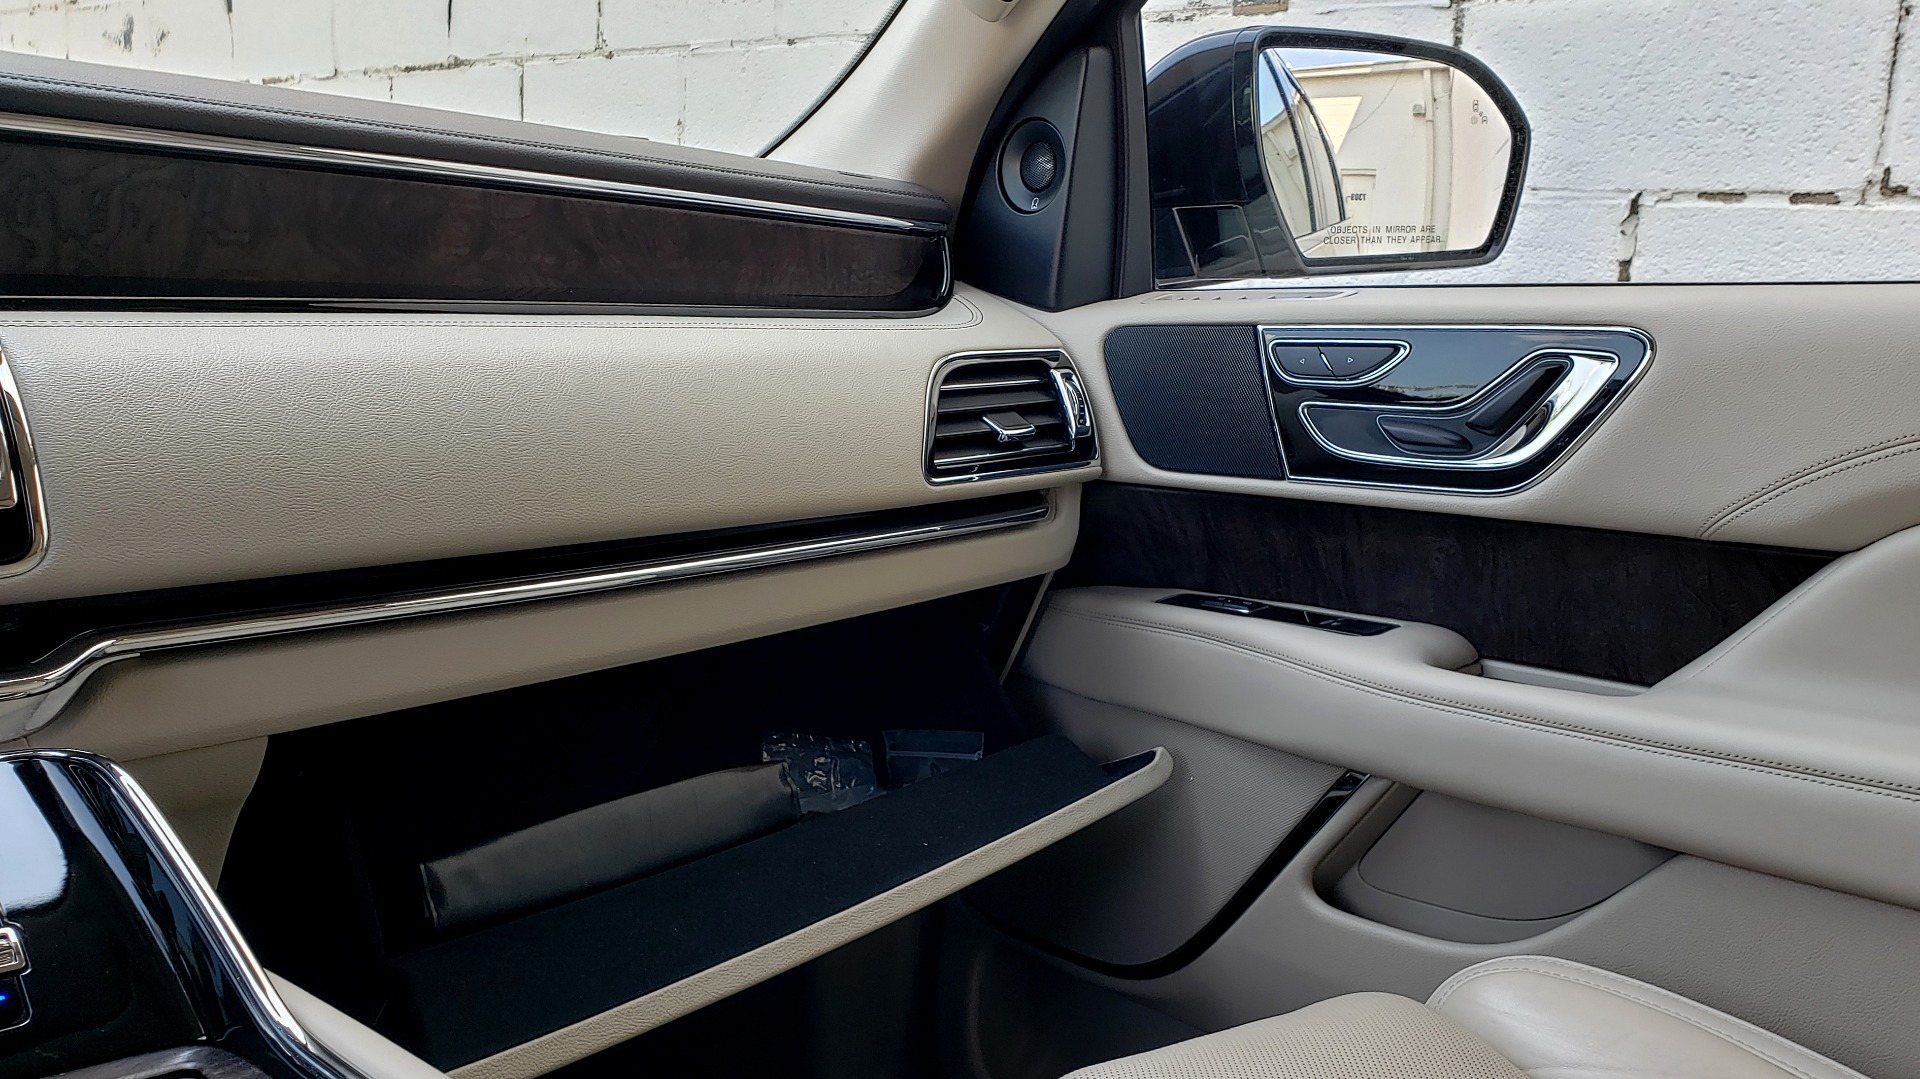 Used 2018 Lincoln NAVIGATOR PREMIERE 4X2 / TWIN-TURBO V6 / NAV / 3-ROW / REARVIEW for sale Sold at Formula Imports in Charlotte NC 28227 60